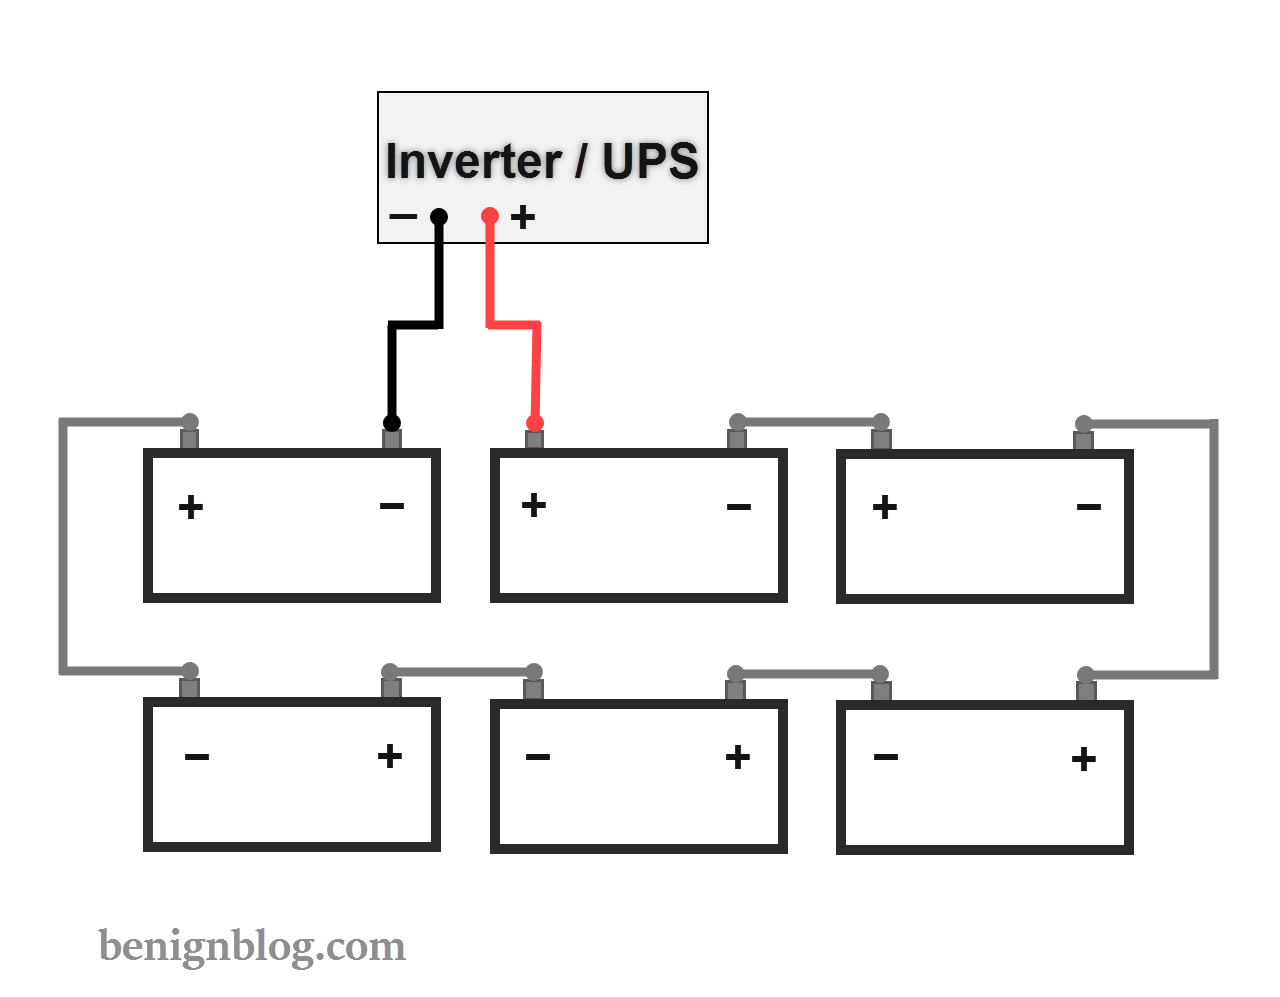 how to connect batteries in series with power inverter or ups 6 volt battery series wiring diagram battery series wiring diagram [ 1280 x 997 Pixel ]